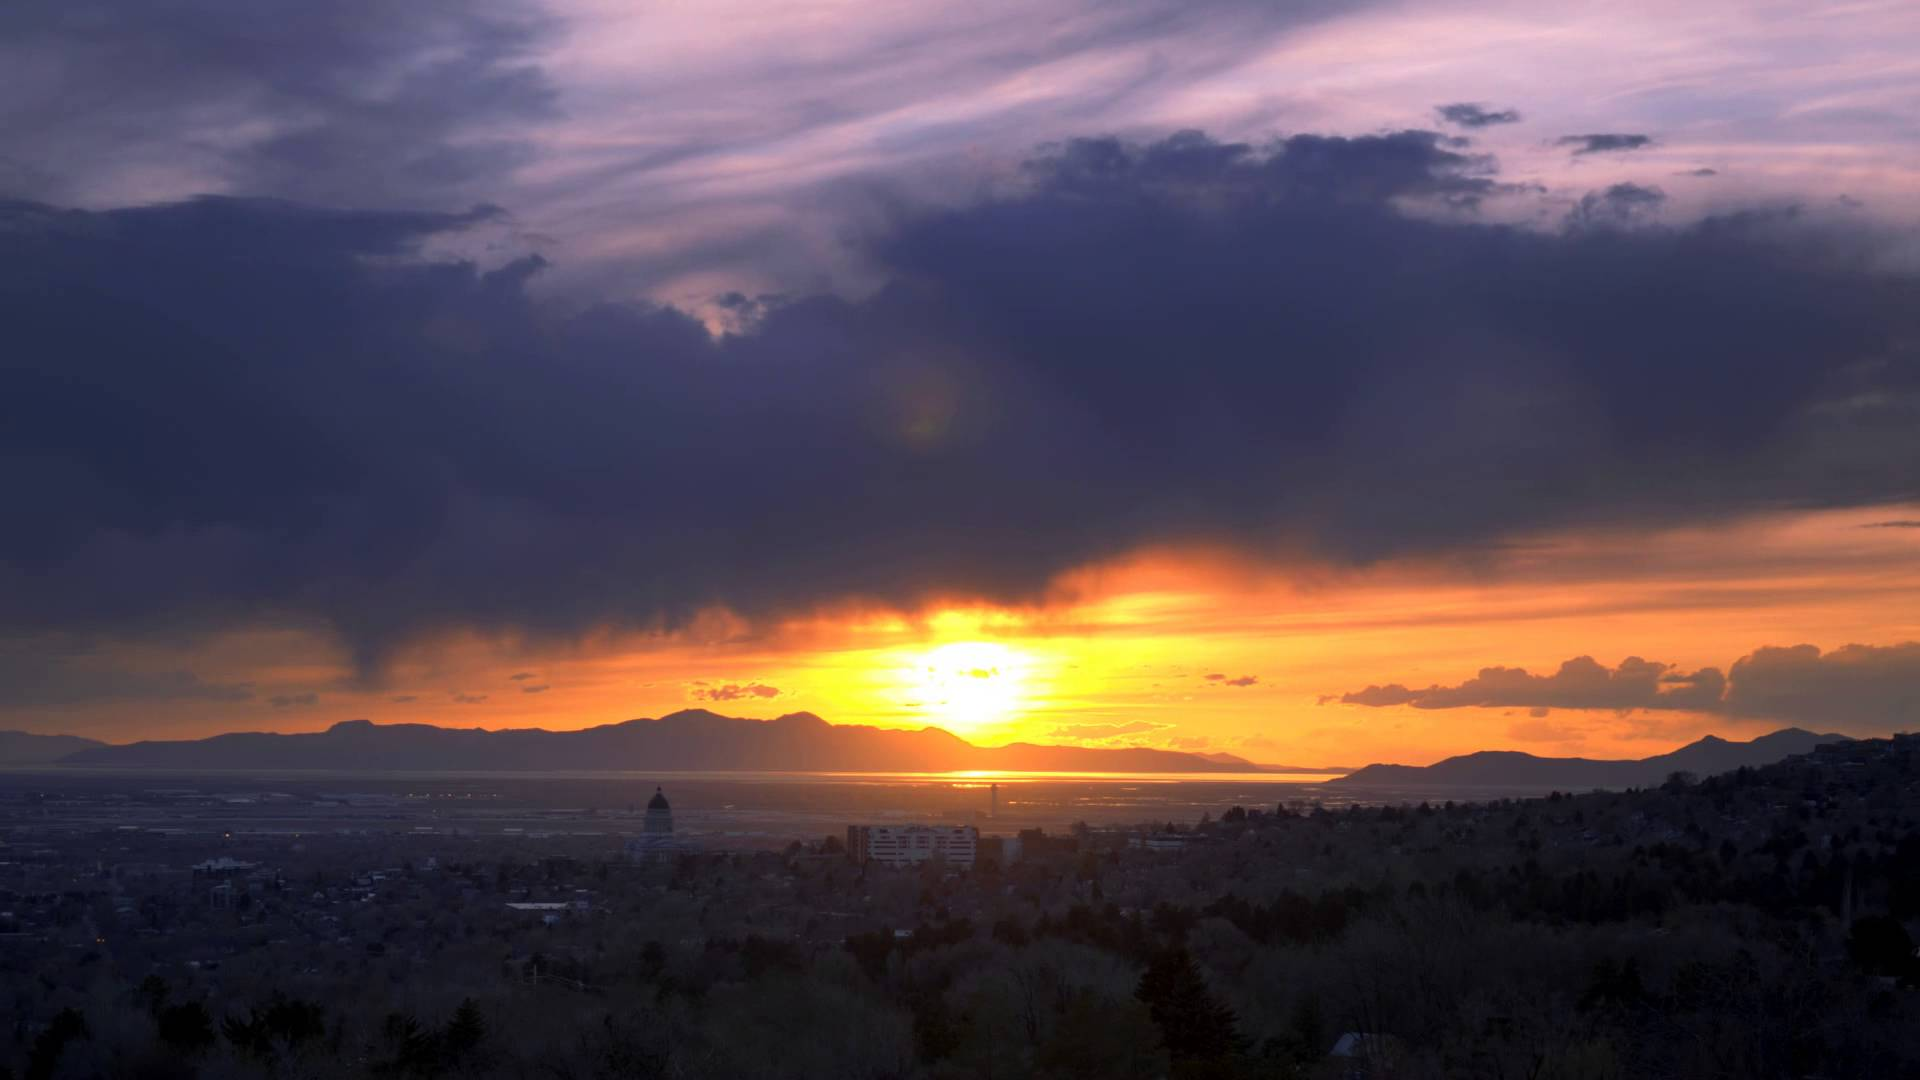 Time Lapse Sunset HD Video 1080p Footage Views of Setting Sun.